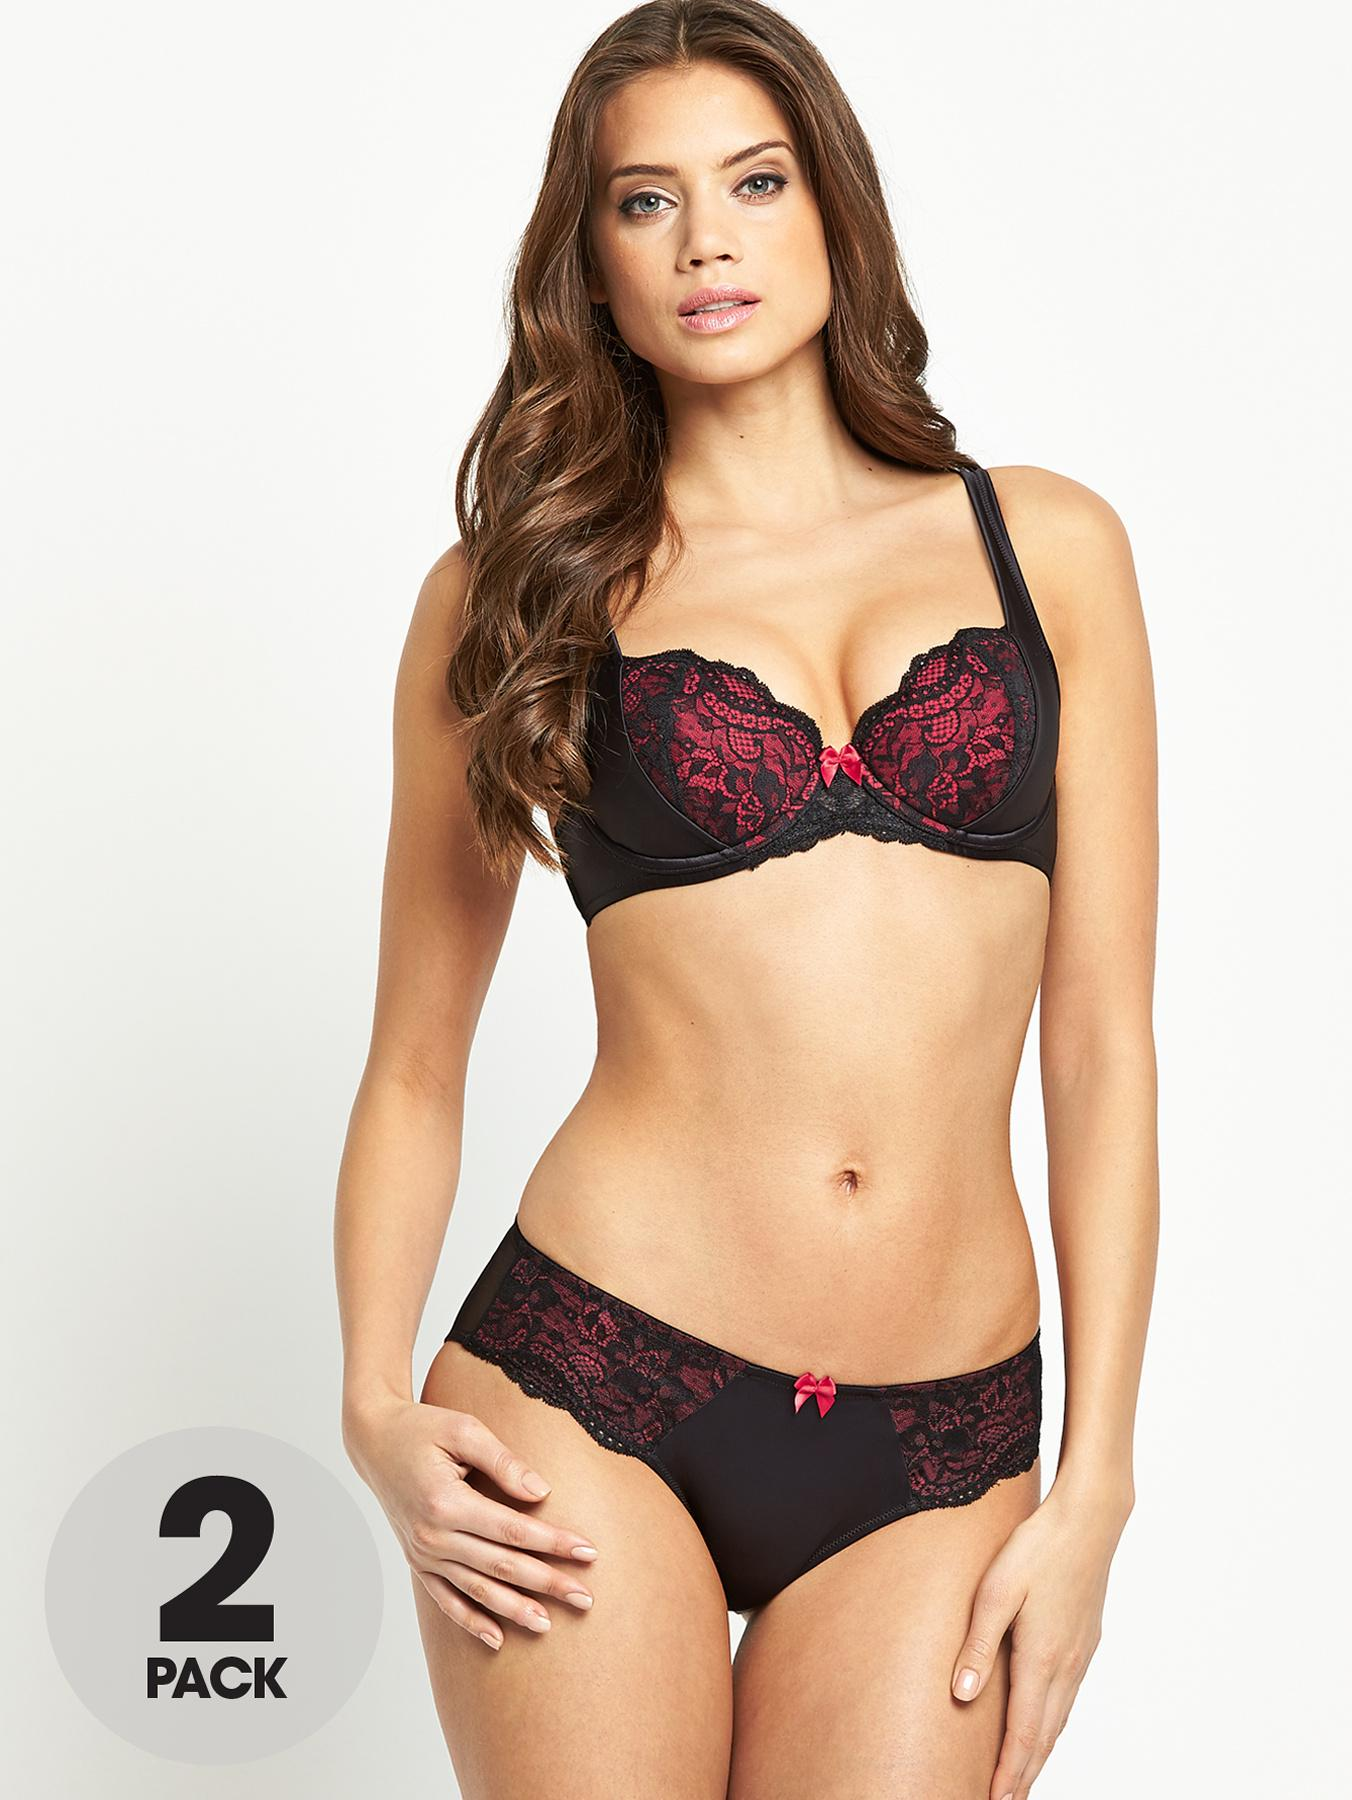 Satin and Lace Briefs (2 Pack), Black at Littlewoods